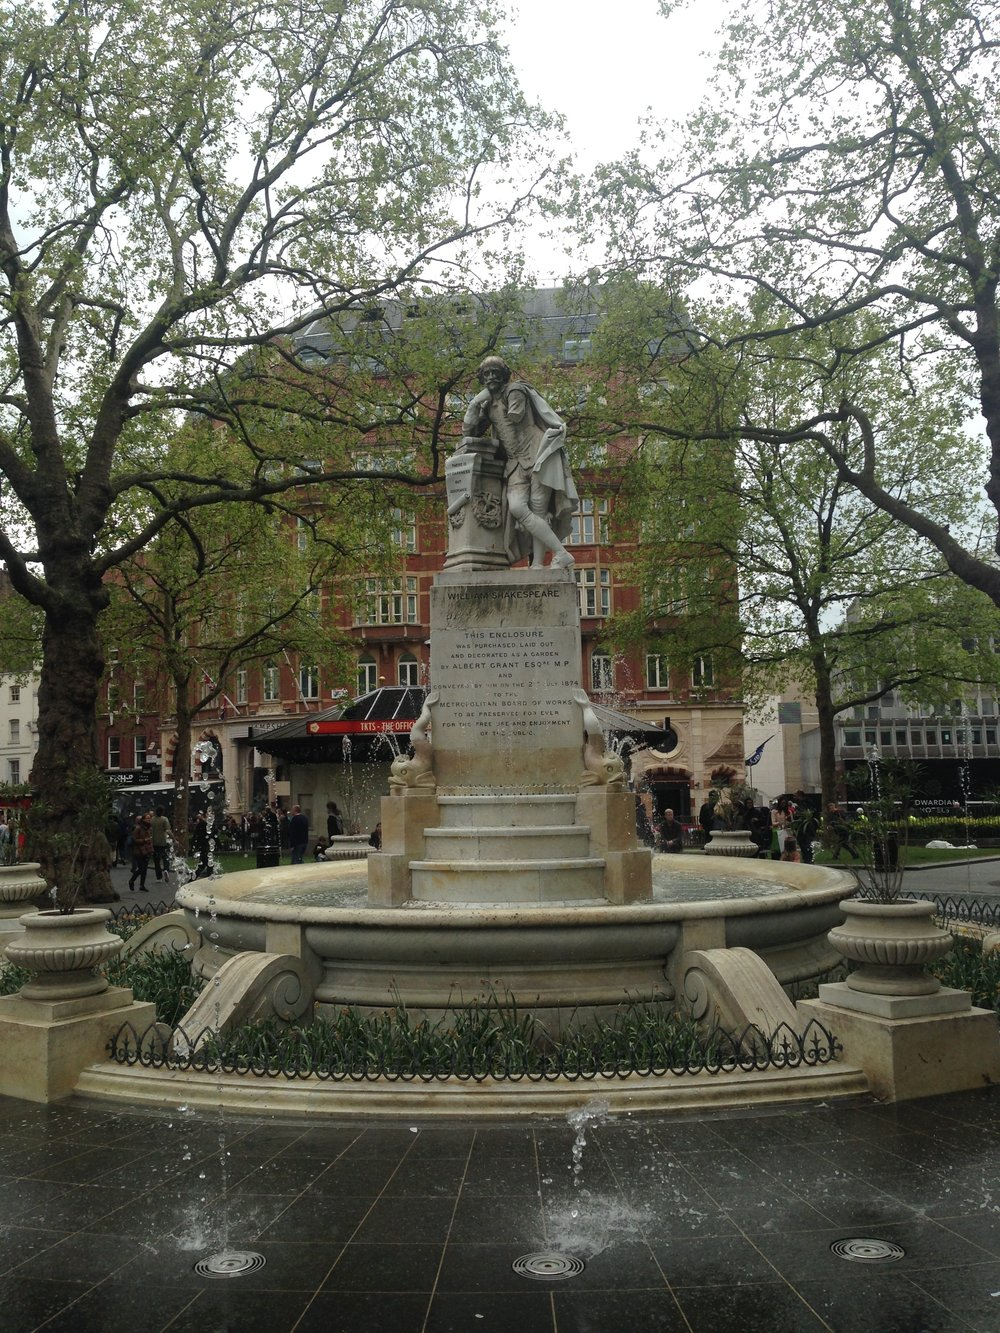 Shakespeare Statue in Leicester Square